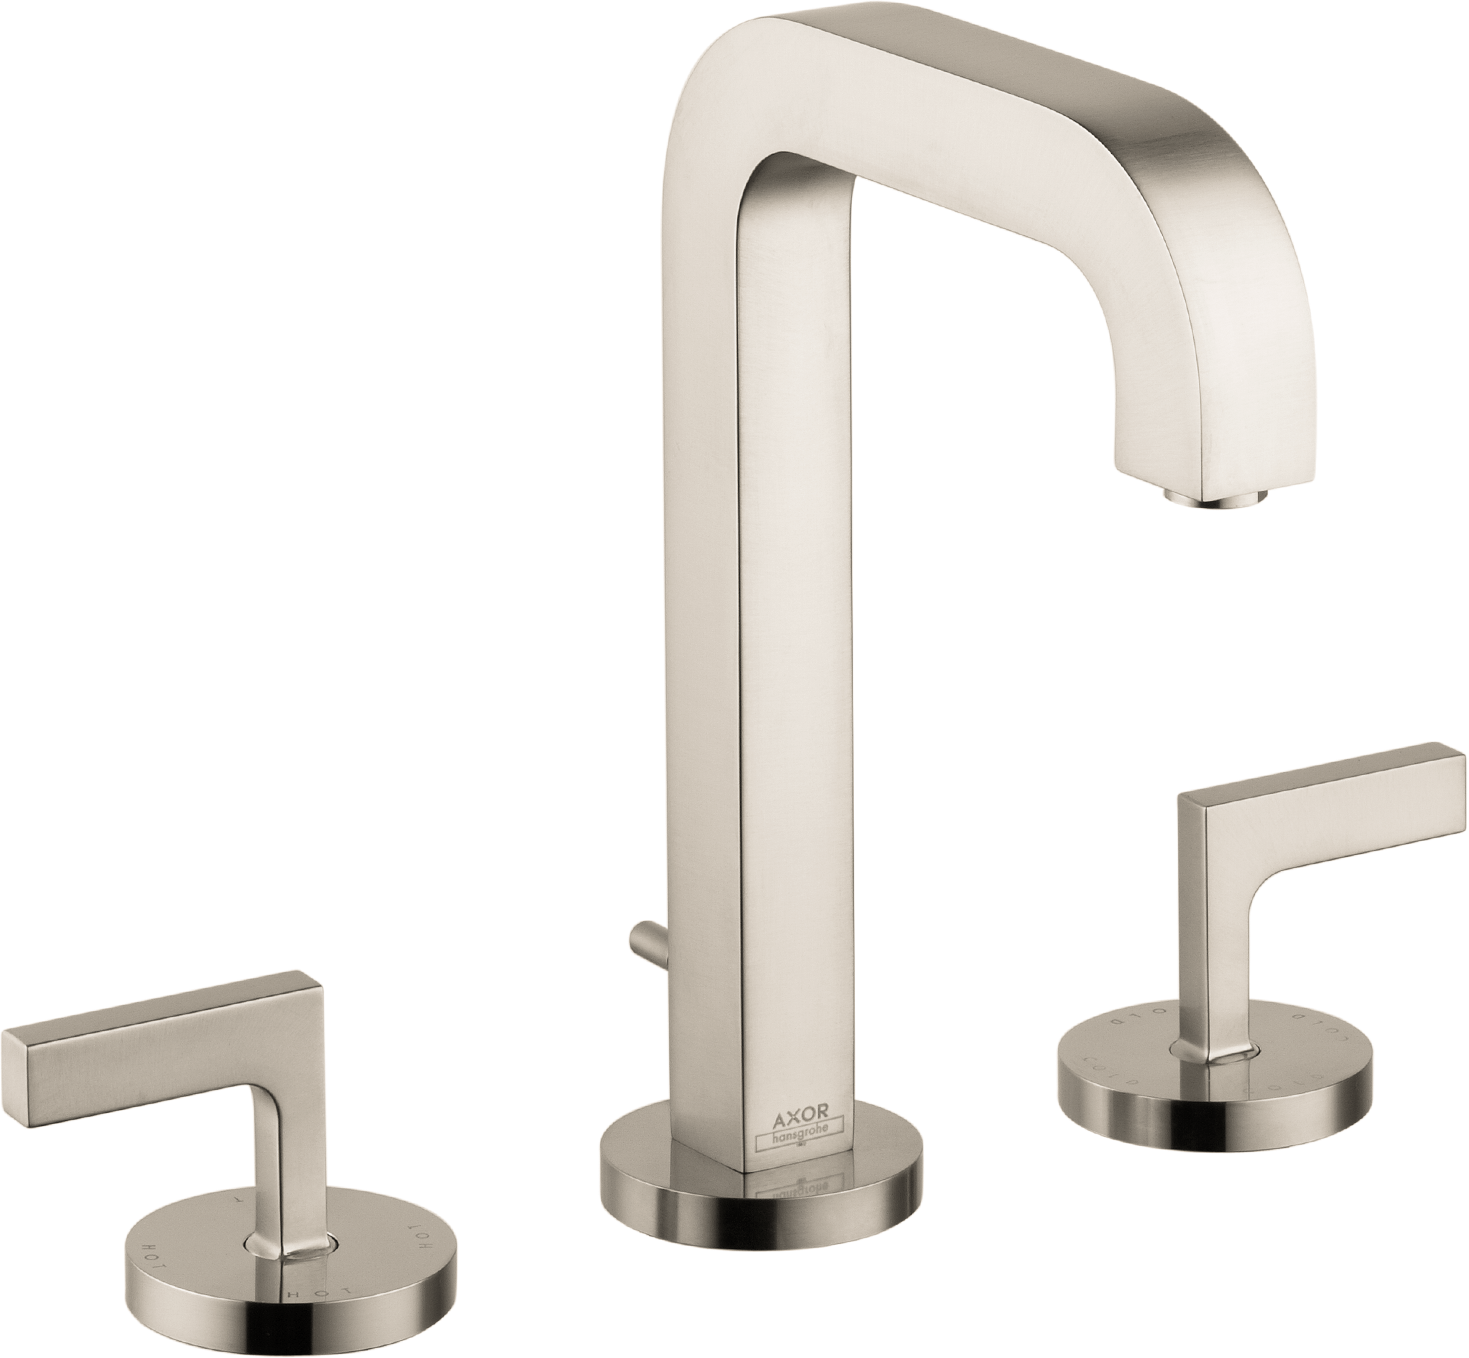 Axor AXOR Citterio Widespread Faucet with Lever Handles, 1.2 GPM